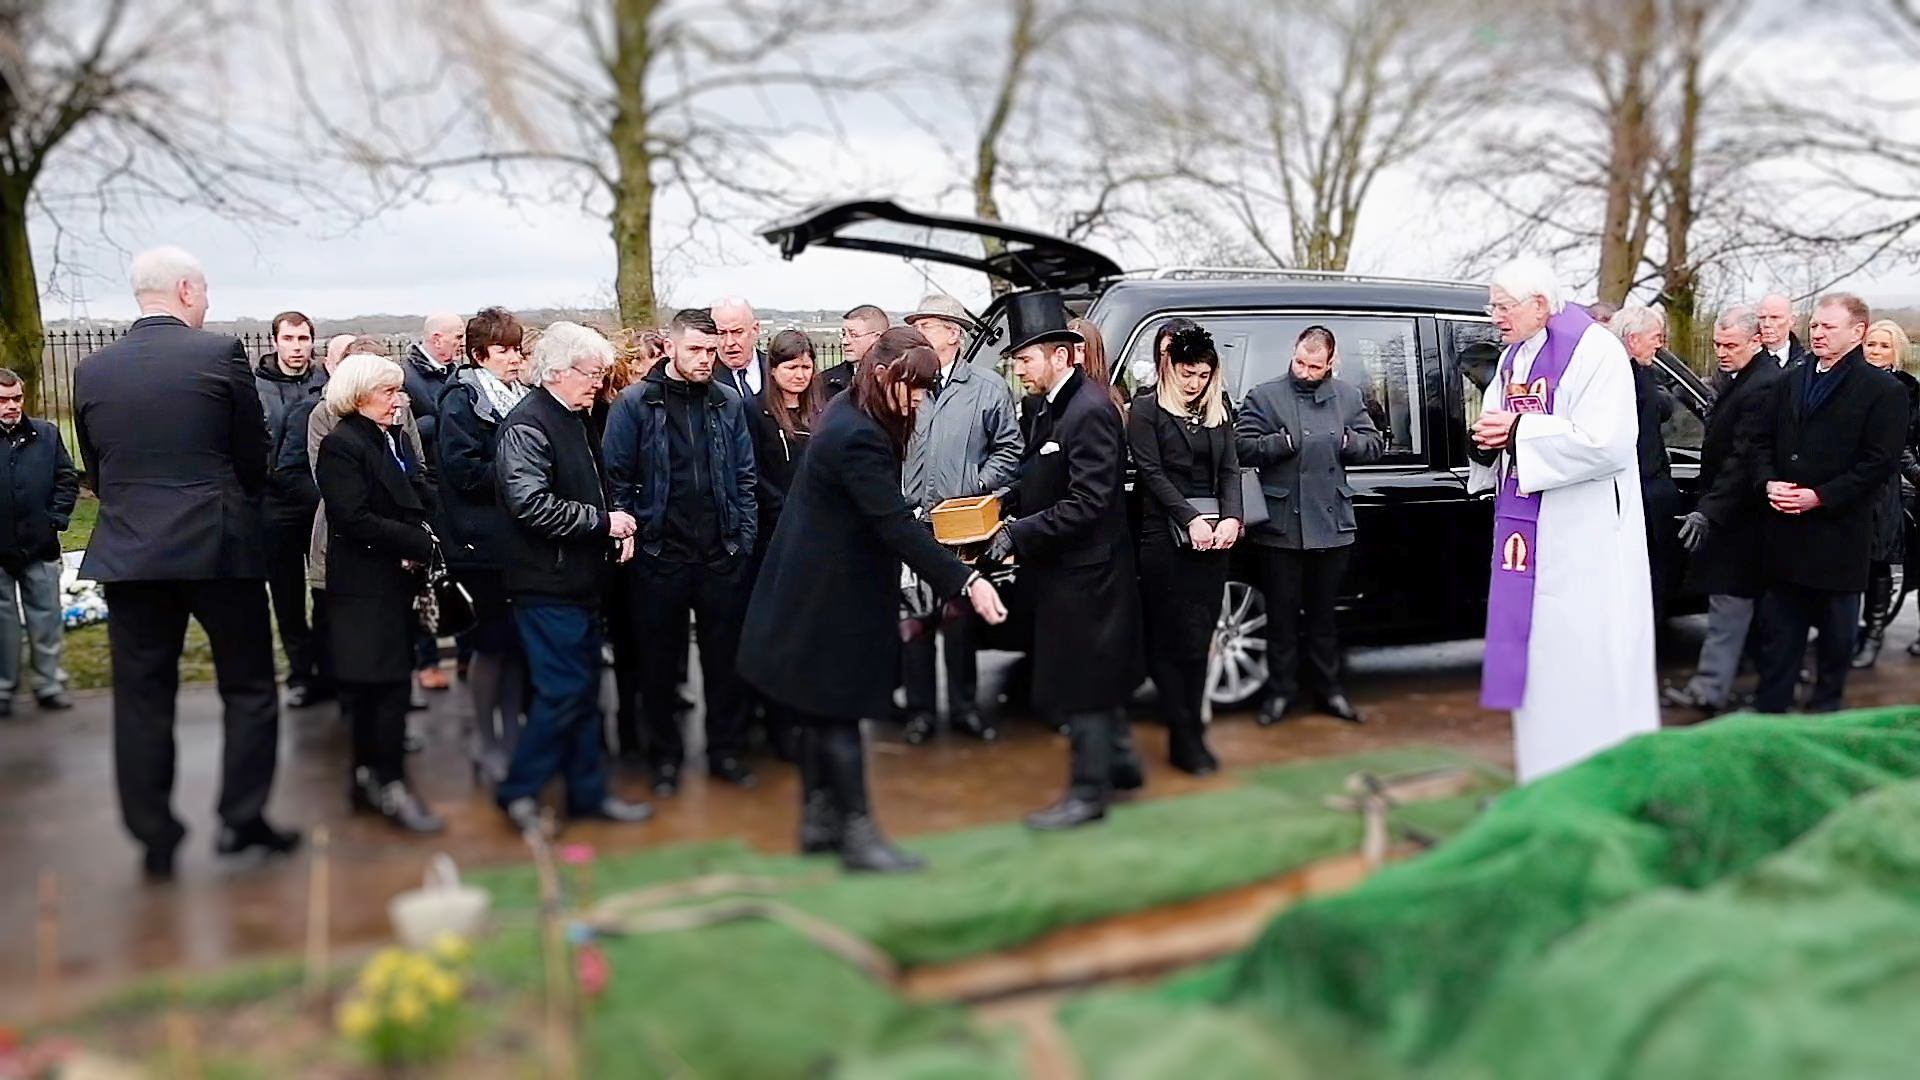 radcliffe cemetery funeral video 401.jpg